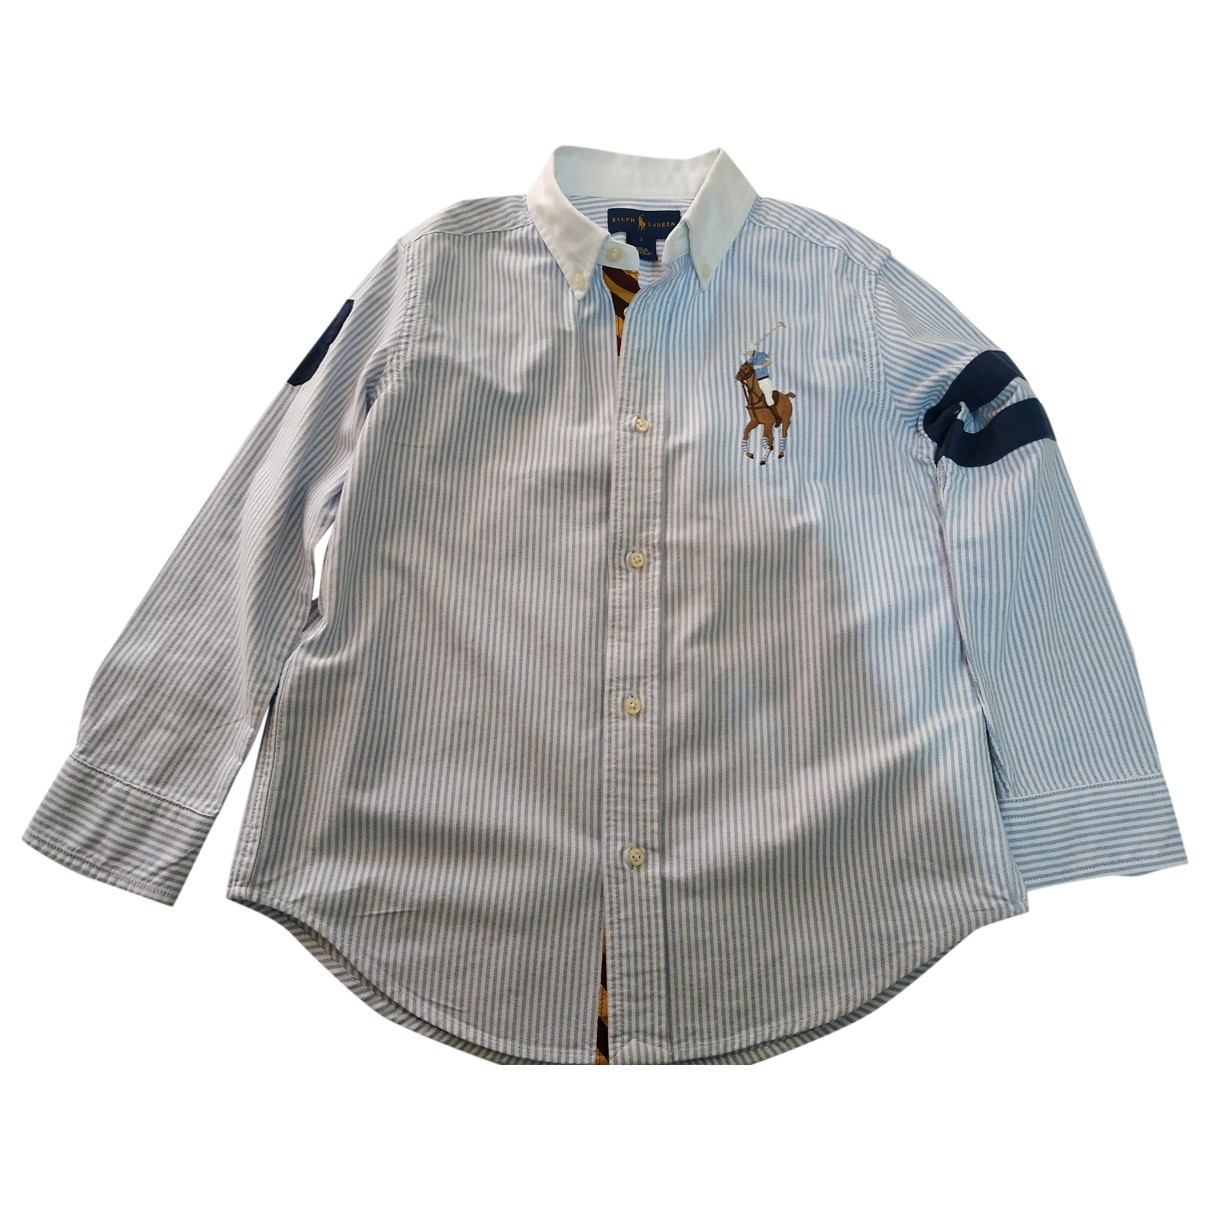 Ralph Lauren \N Blue Cotton  top for Kids 6 years - until 45 inches UK